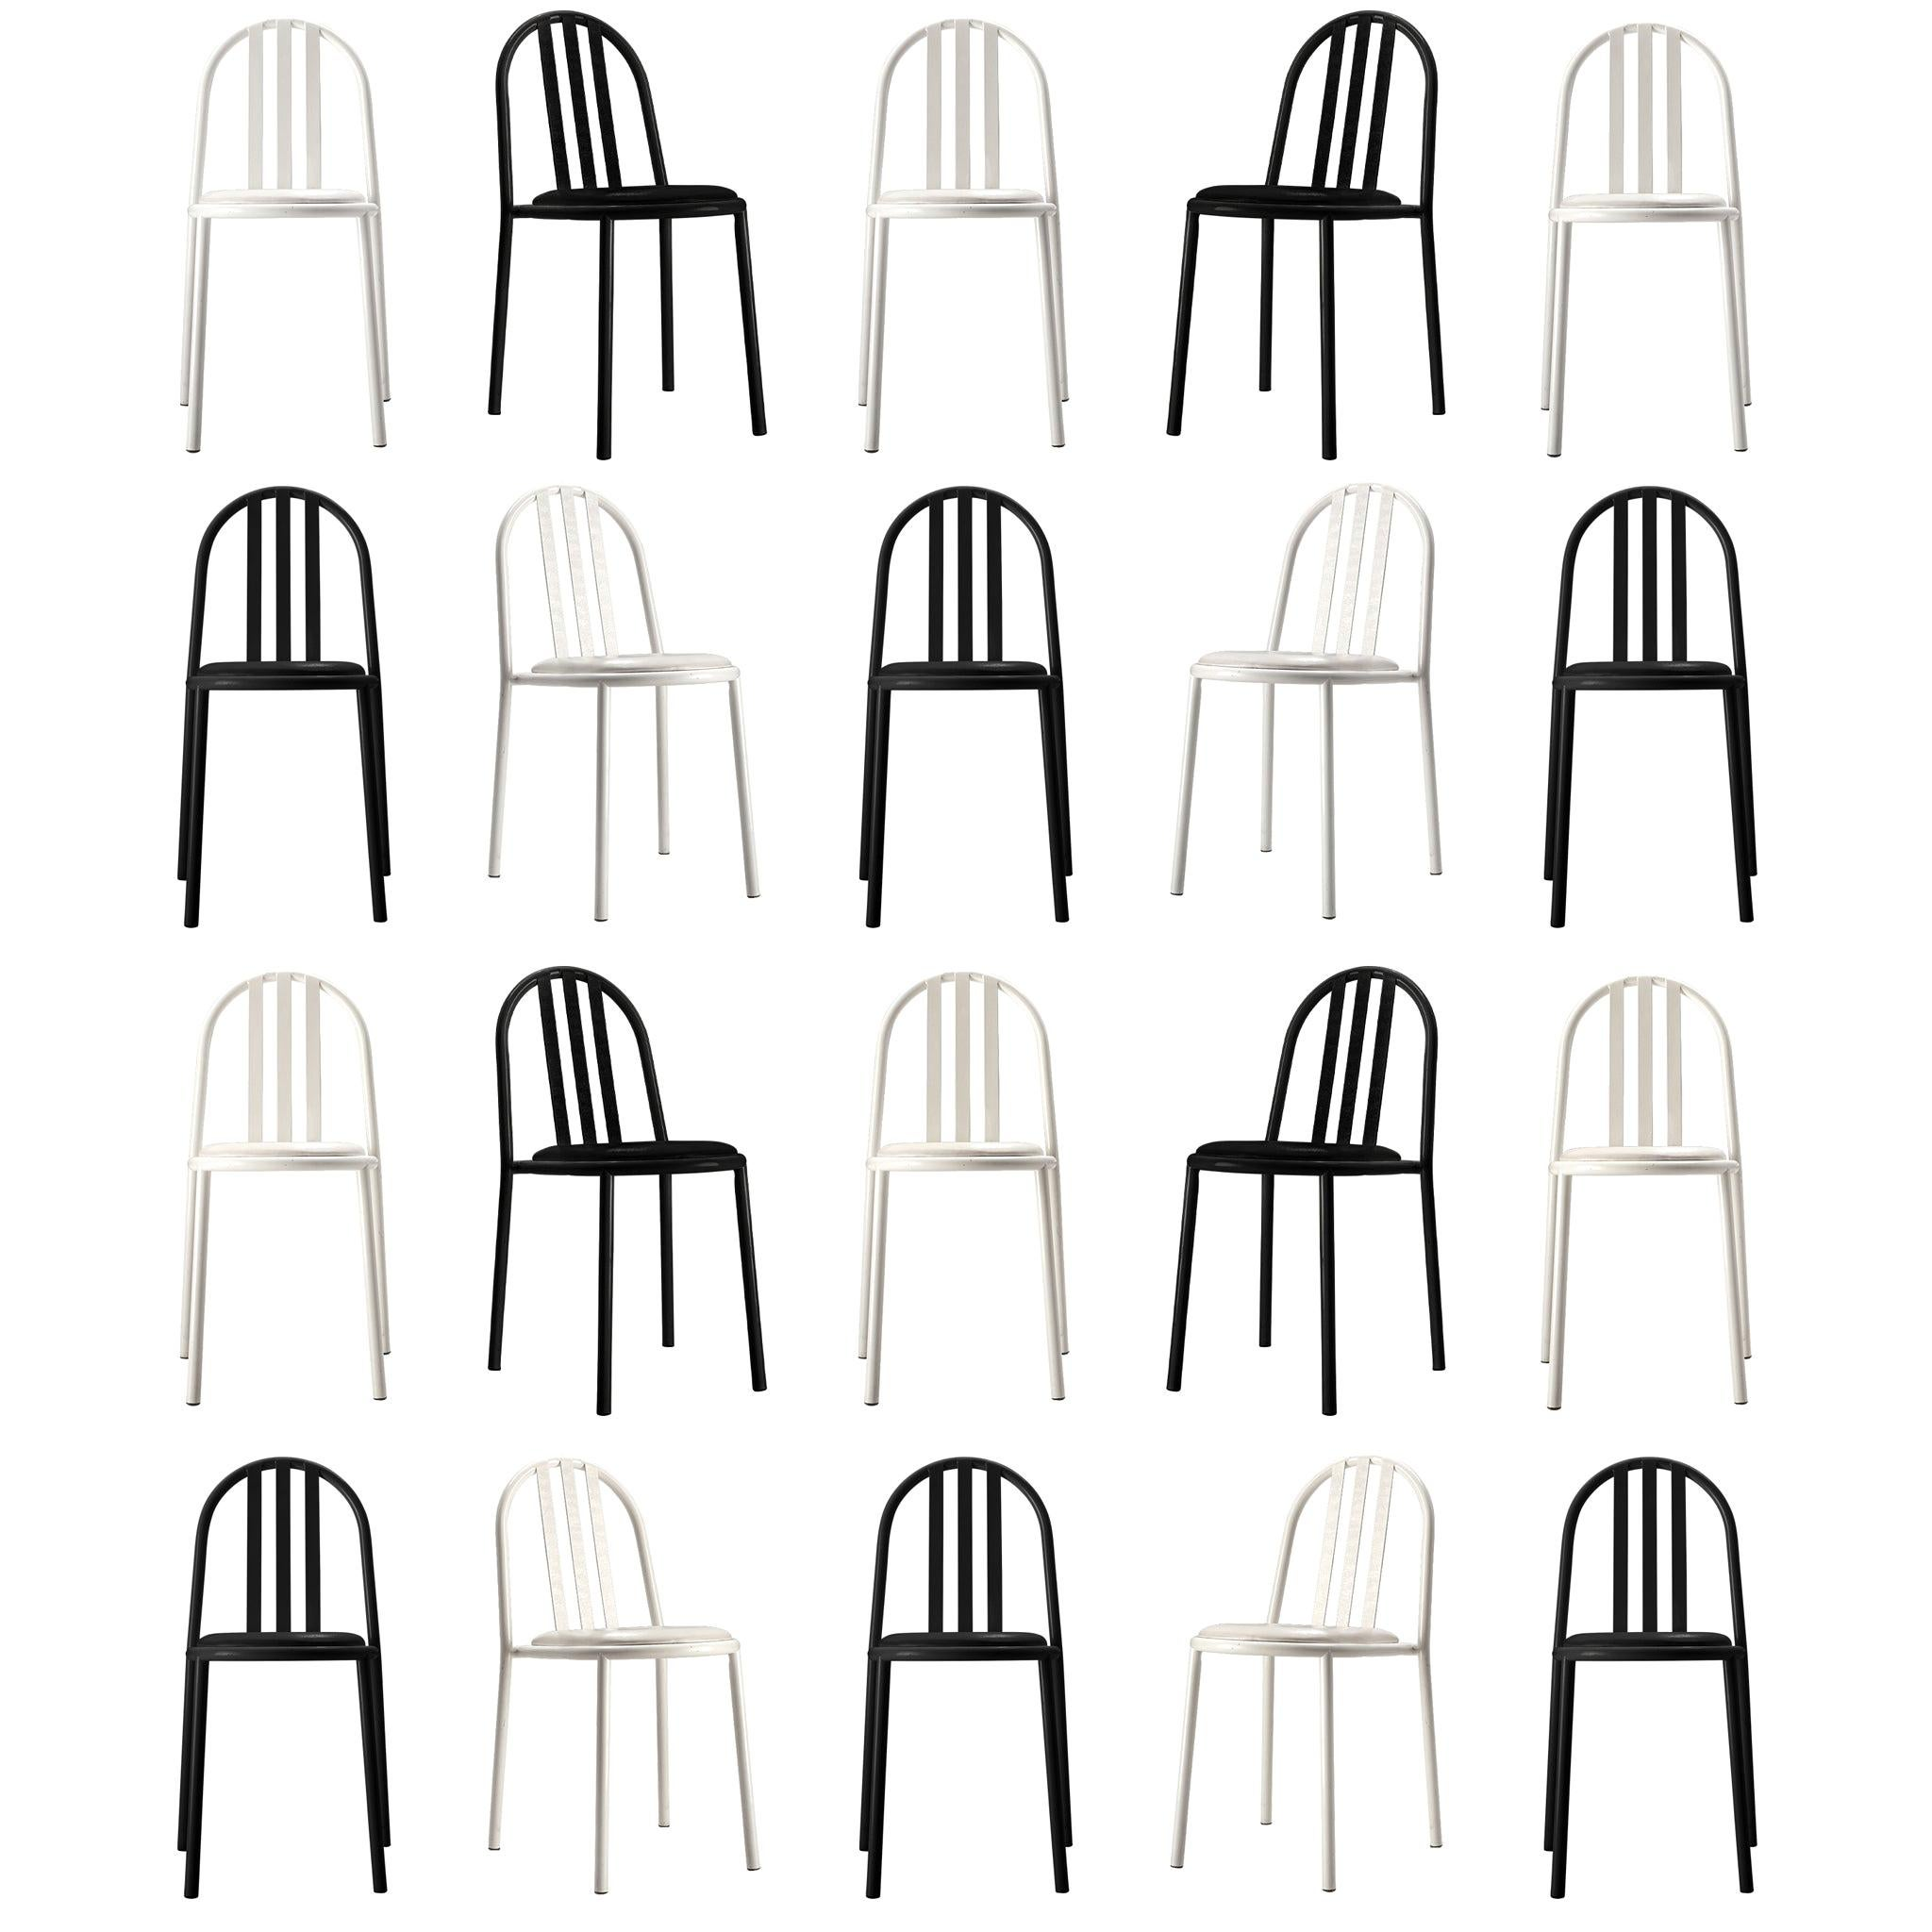 Large Set of White and Black Tubular Steel Chairs by Robert Mallet Stevens